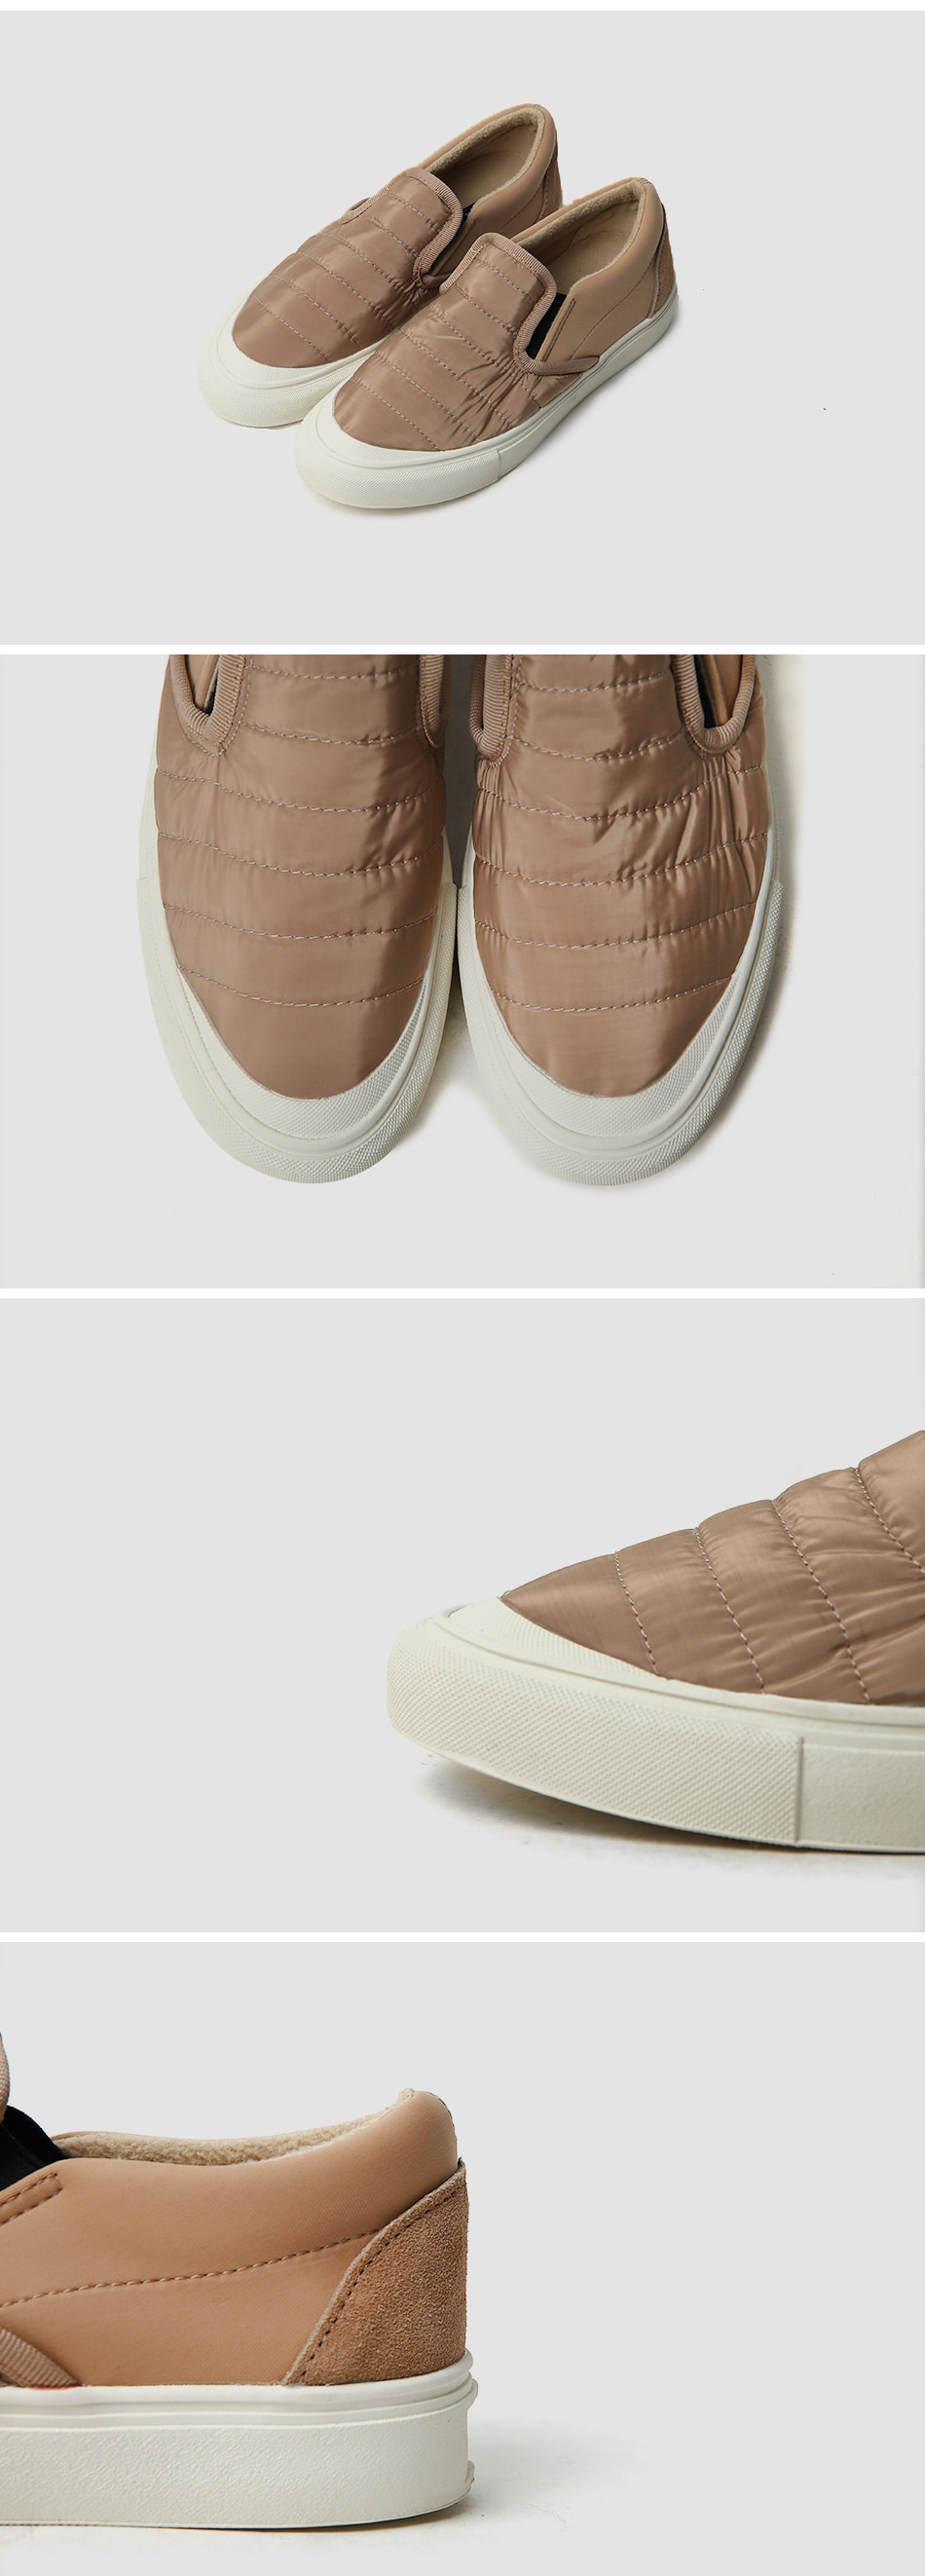 The Way Padded Slip-on 3cm